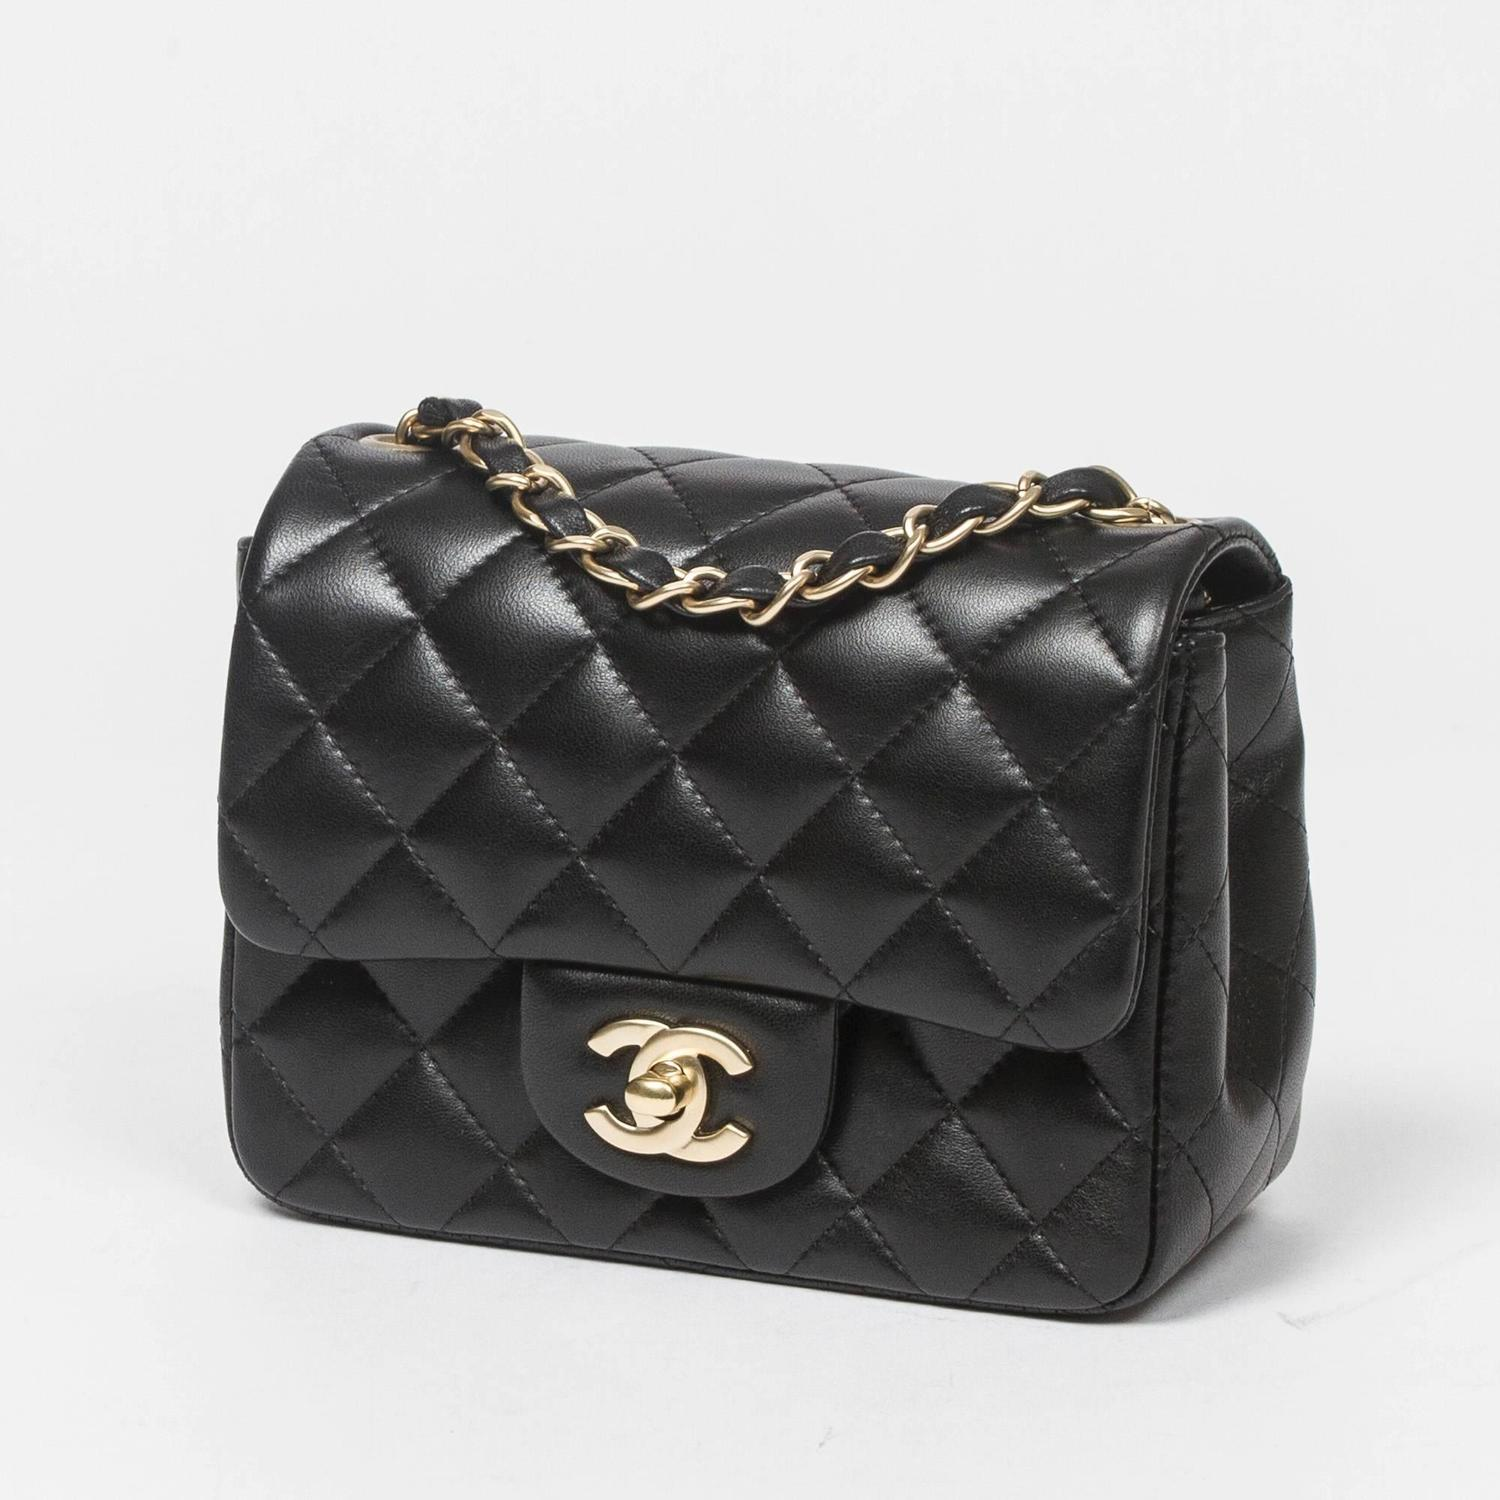 0faf793b9cf077 Chanel Bag Types | Stanford Center for Opportunity Policy in Education